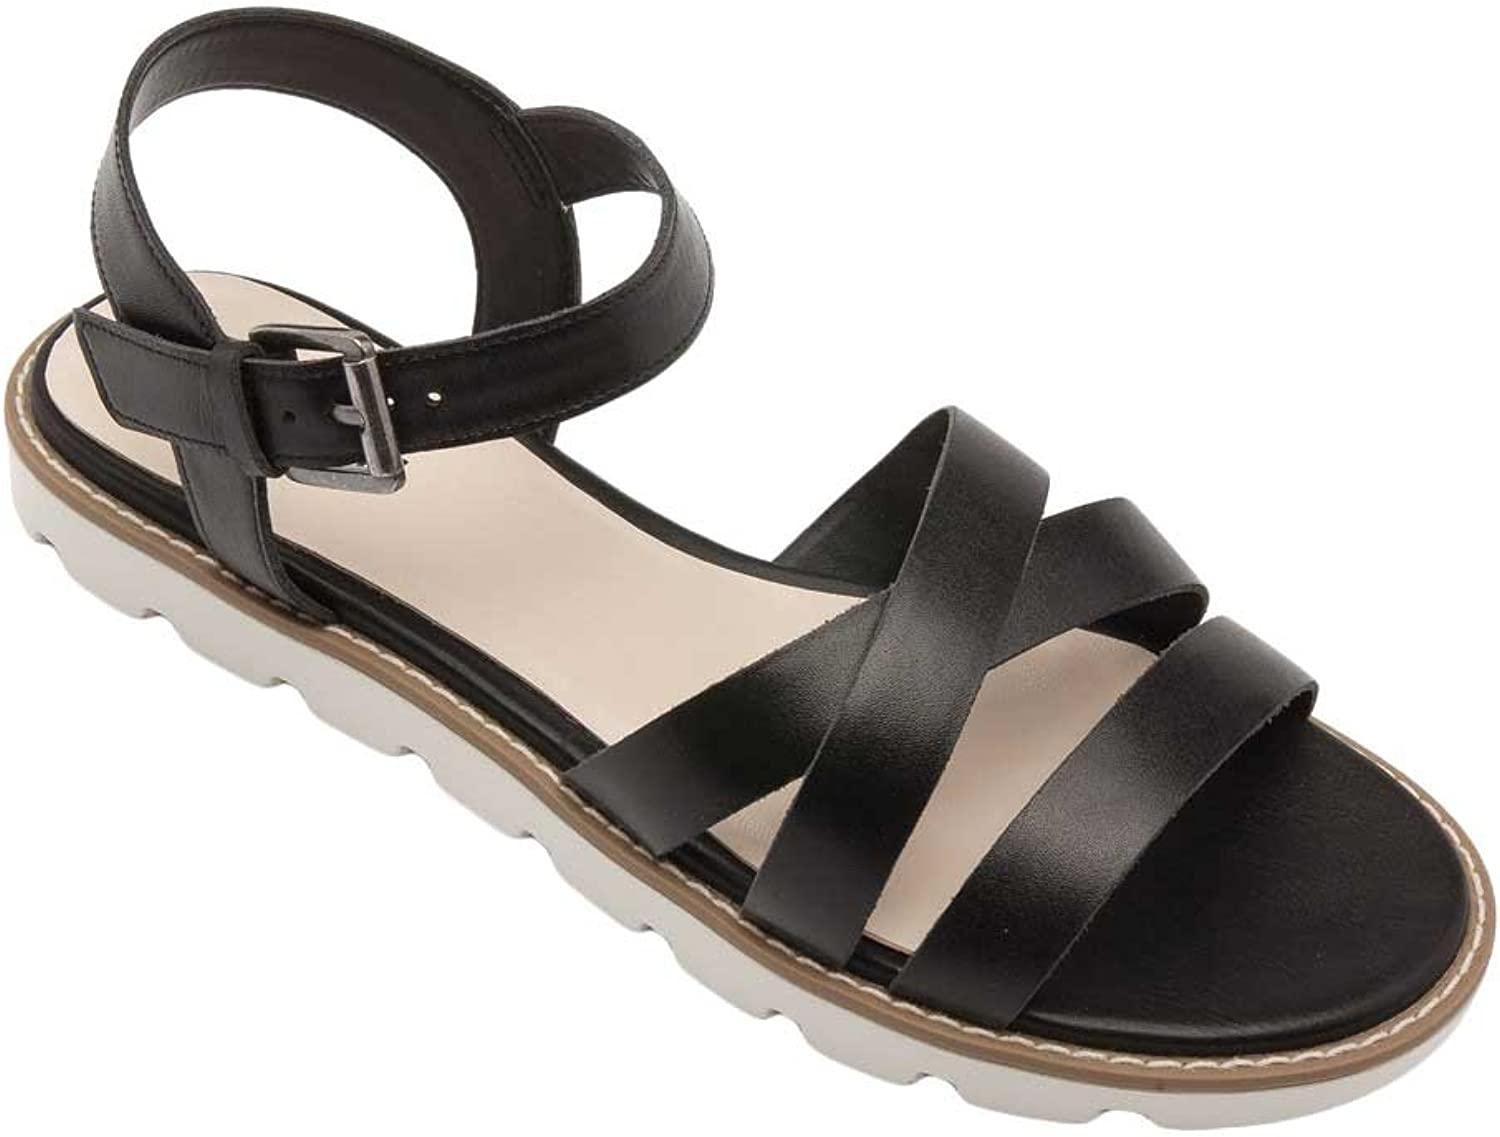 Pic Pay Cabo Women's Sandals - Leather Strappy Flat Sandal Black Leather 7M